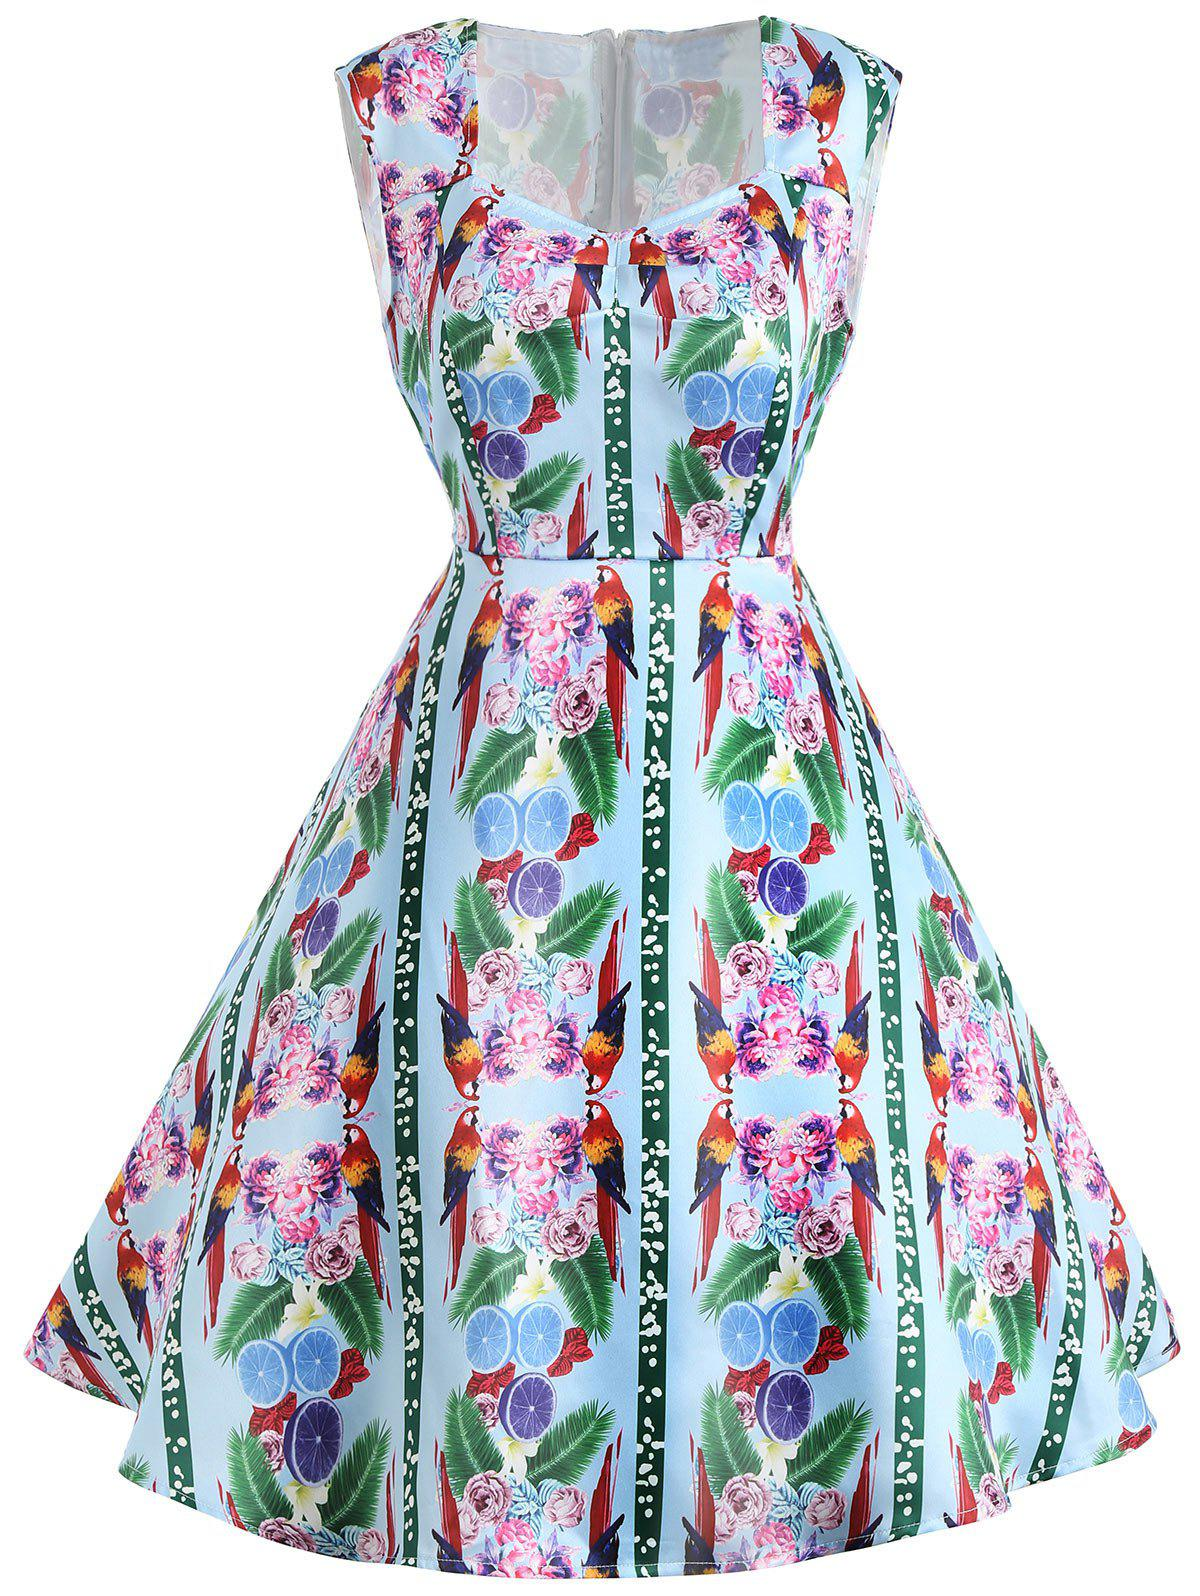 Vintage Flower Print Sleeveless Dress - GREEN M